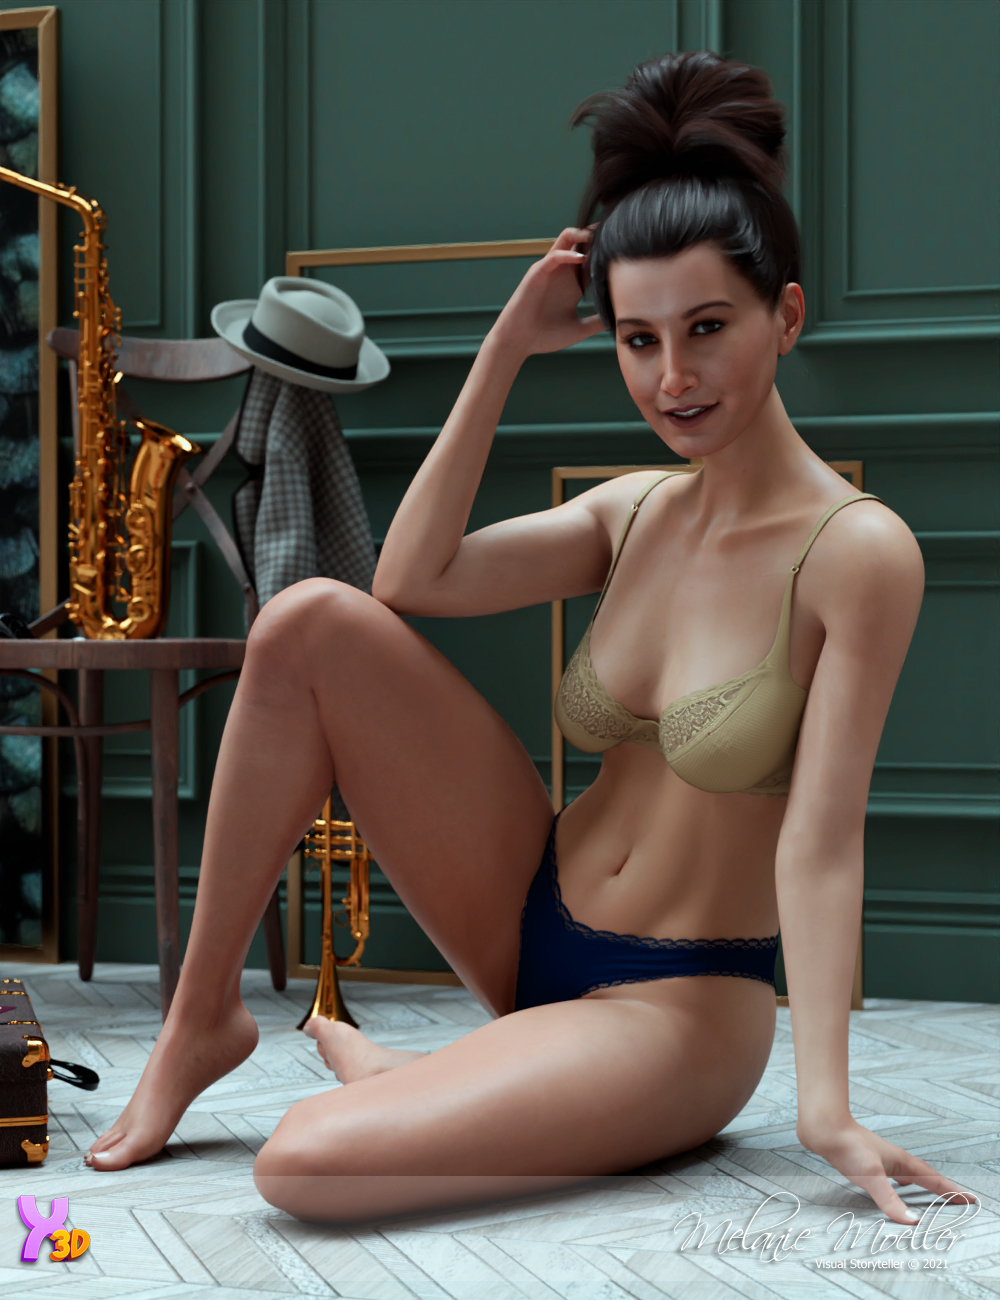 Eliza for Xtrart-3d by Nyala